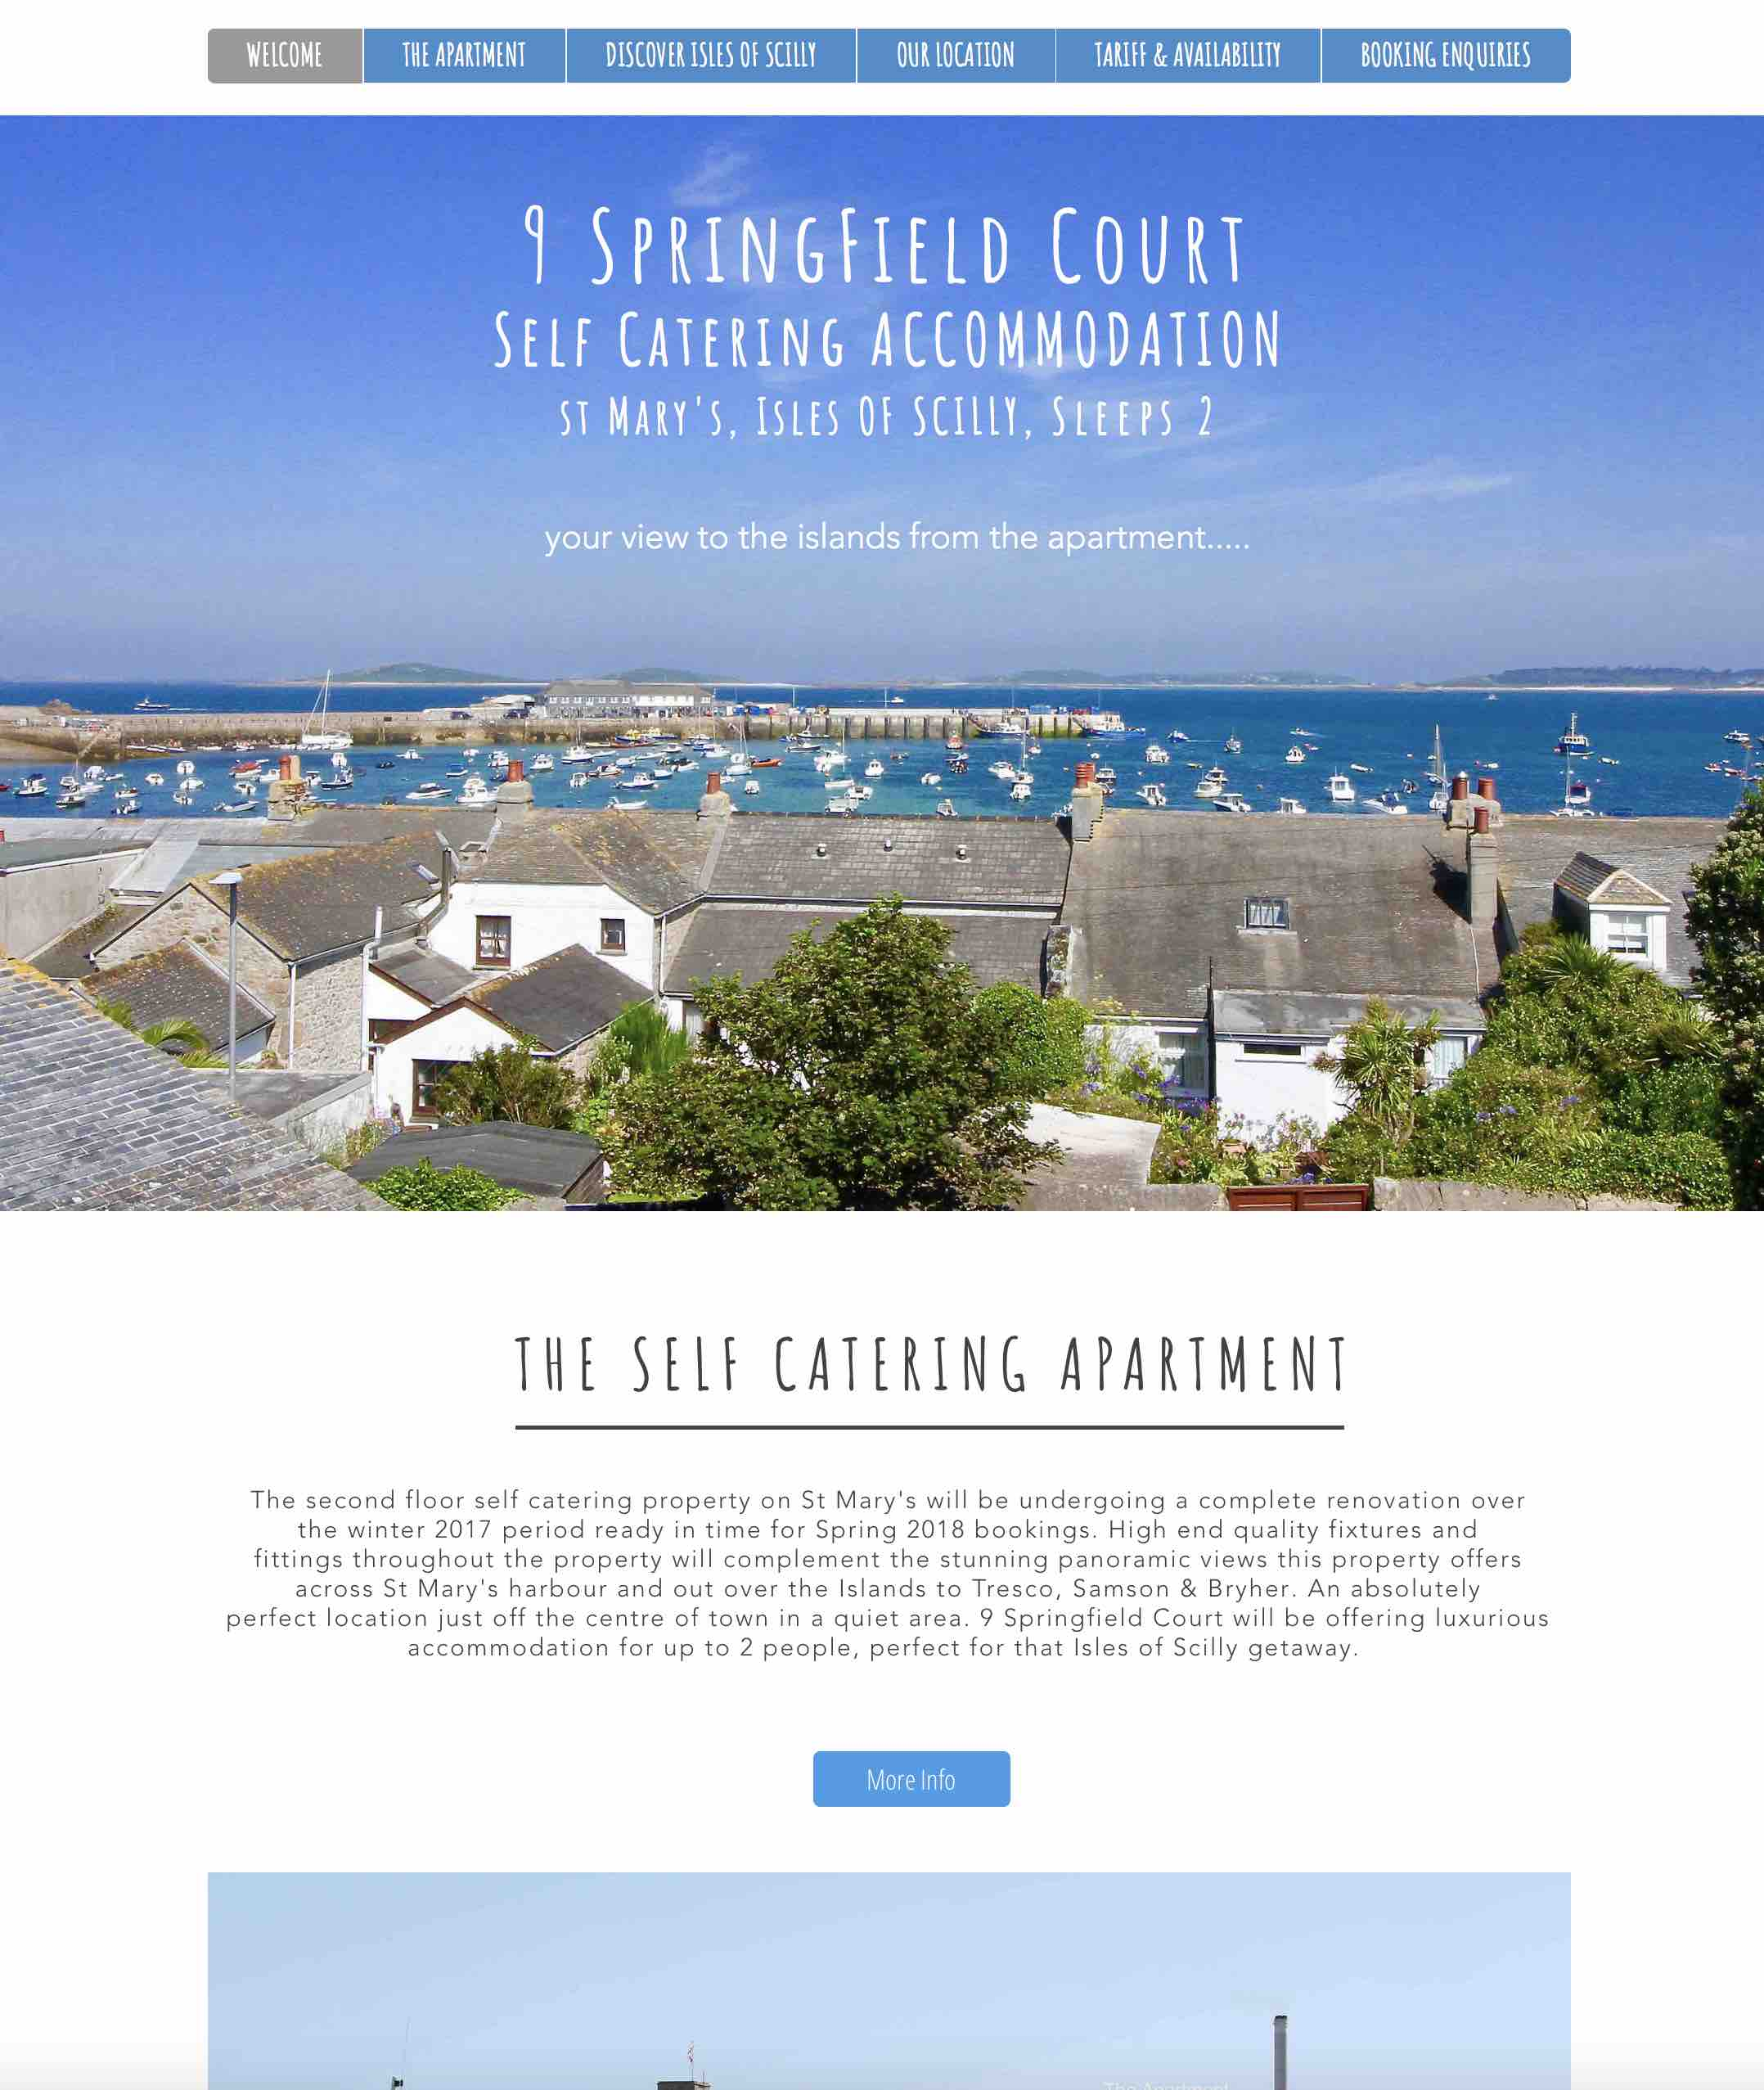 Springfield Court Self Catering